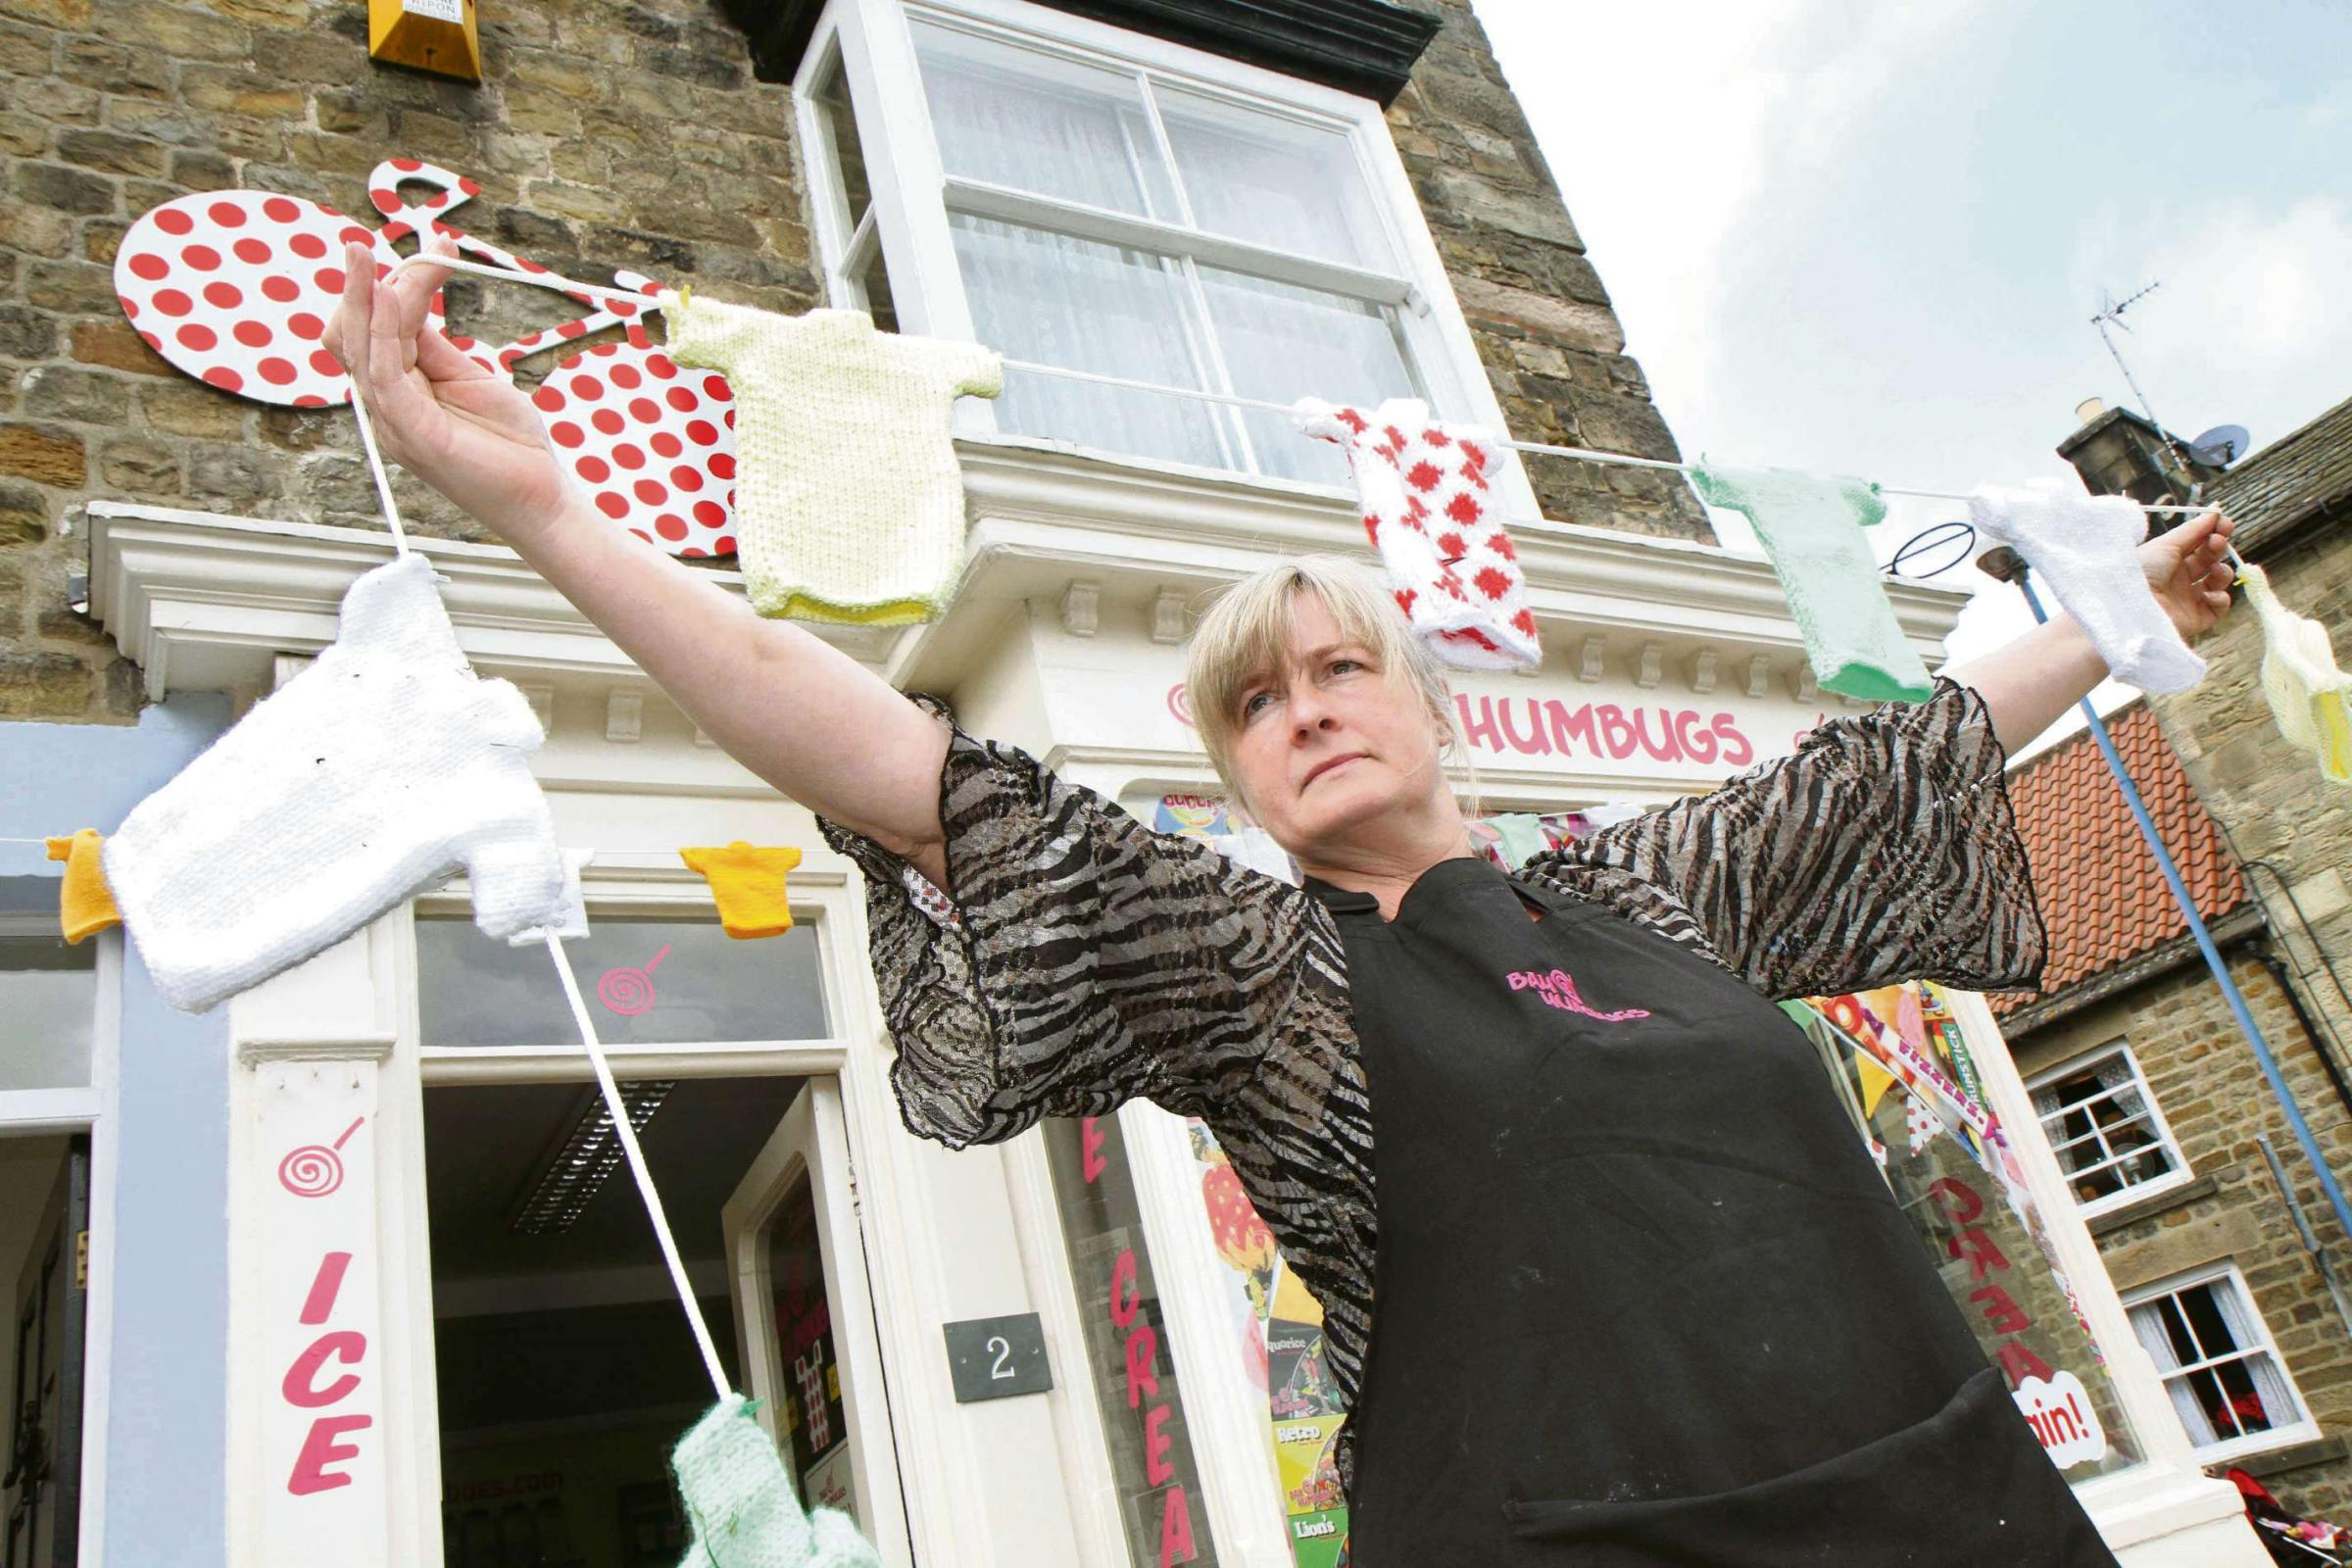 Health and safety 'knit-wits' order Tour de France bunting to be taken down